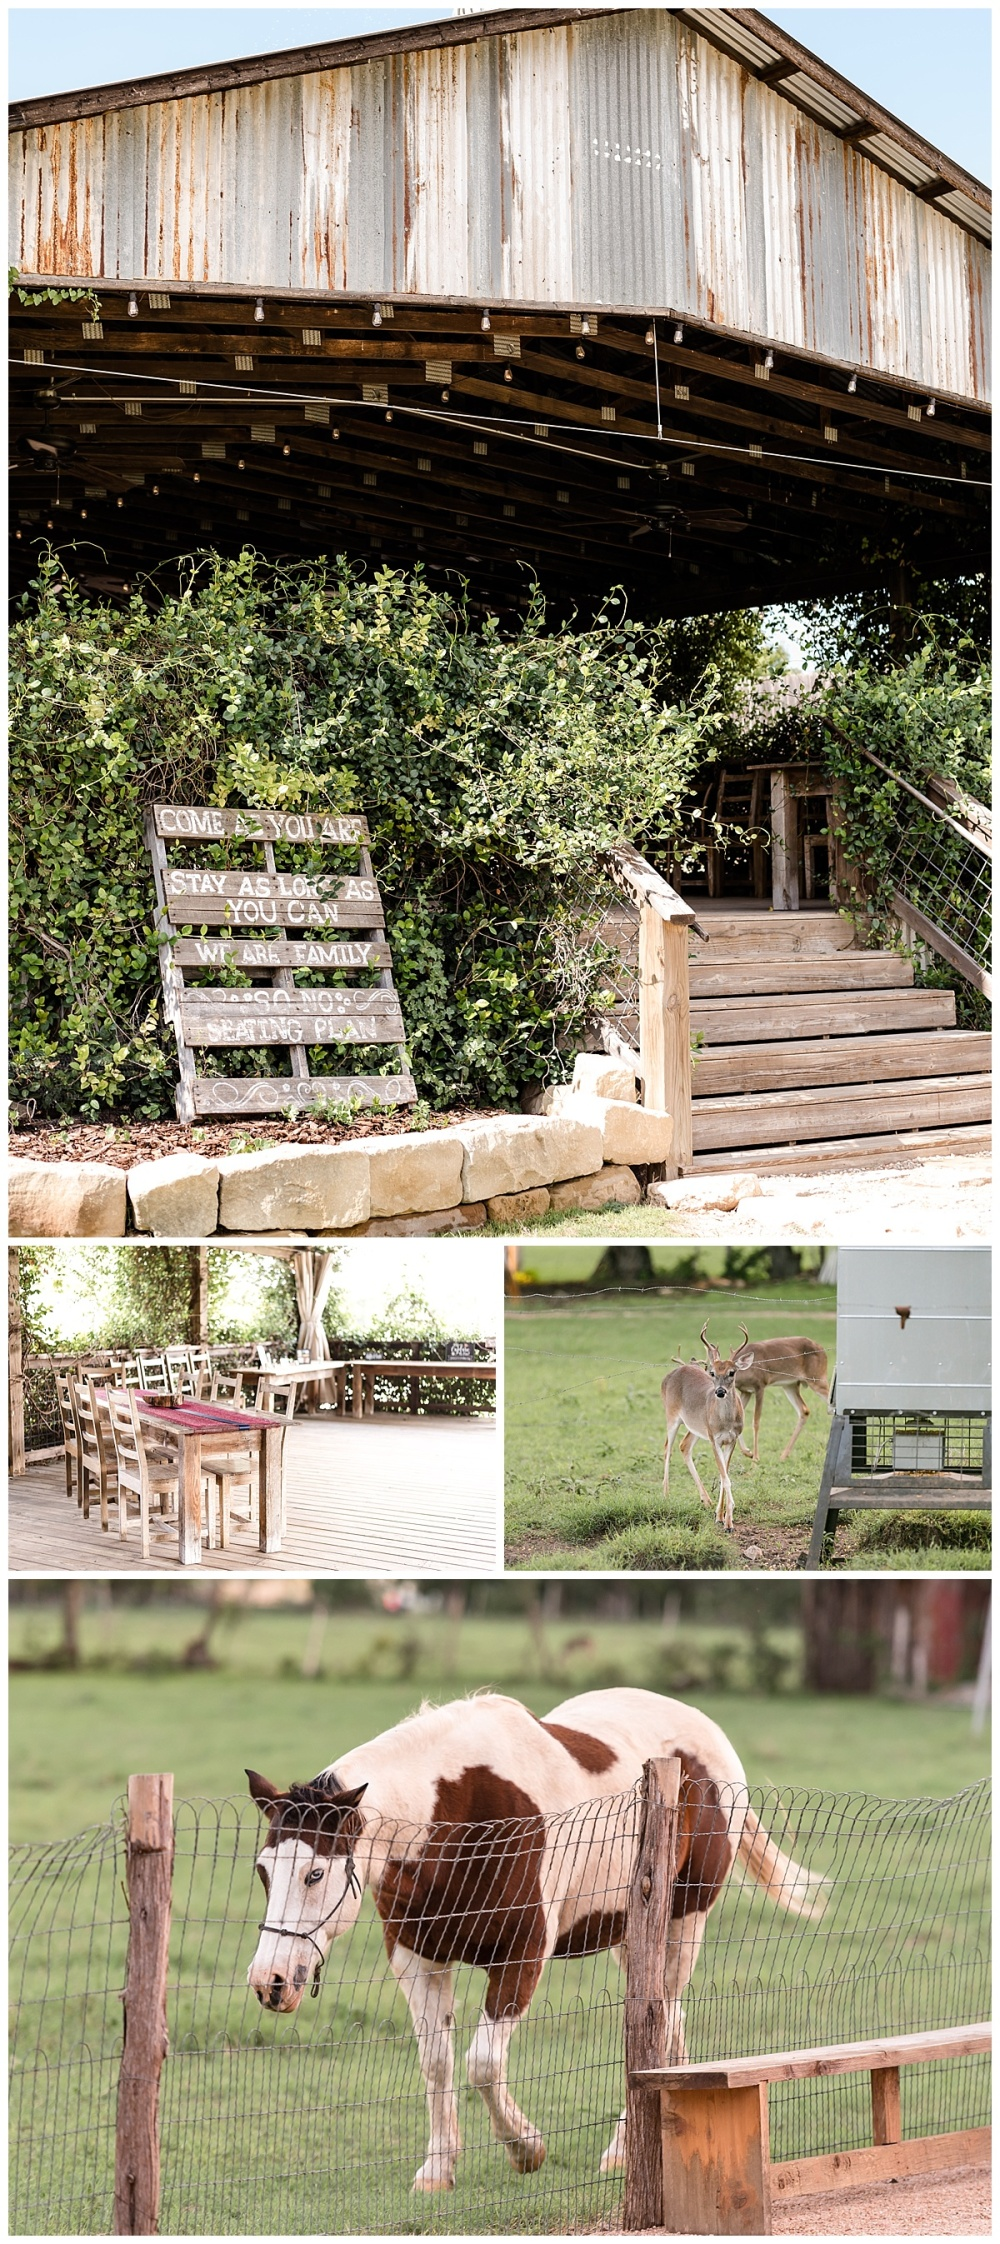 Texas-Wedding-Photographer-Gruene-Estate-Open-Air-Chapel-Carly-Barton-Photography-Katie-Nic_0005.jpg